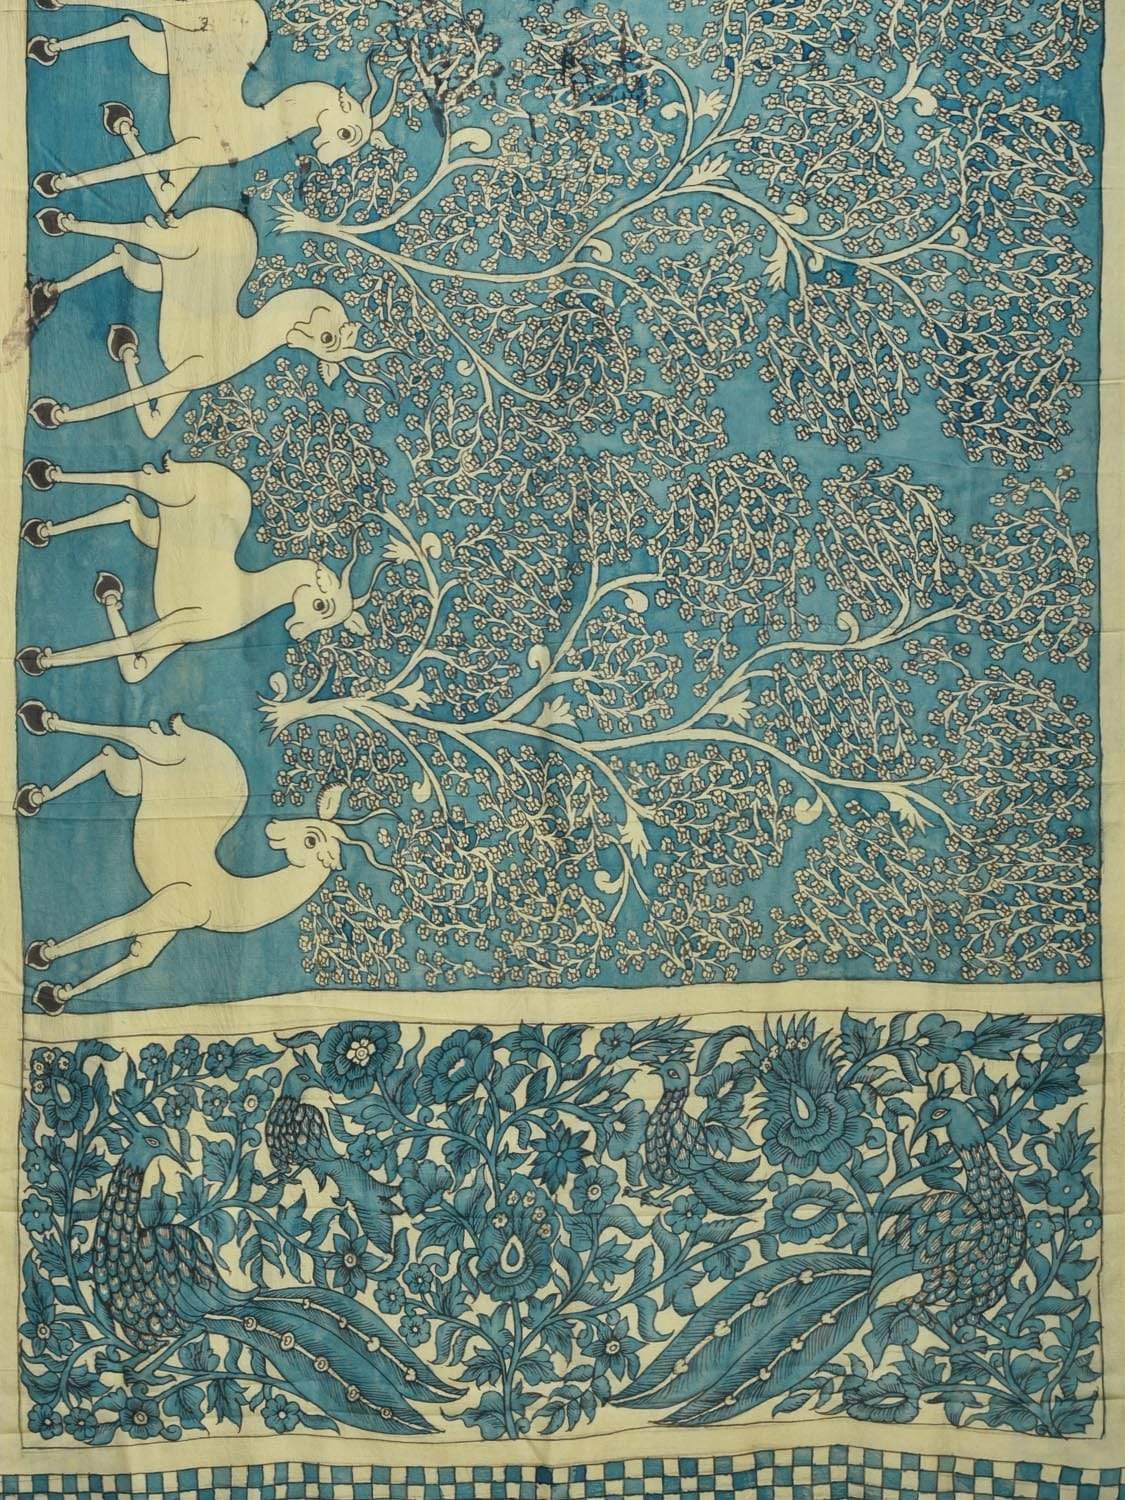 Blue Kalamkari Hand Painted Silk Handloom Saree with Deers, Trees and Pallu Design KL0190